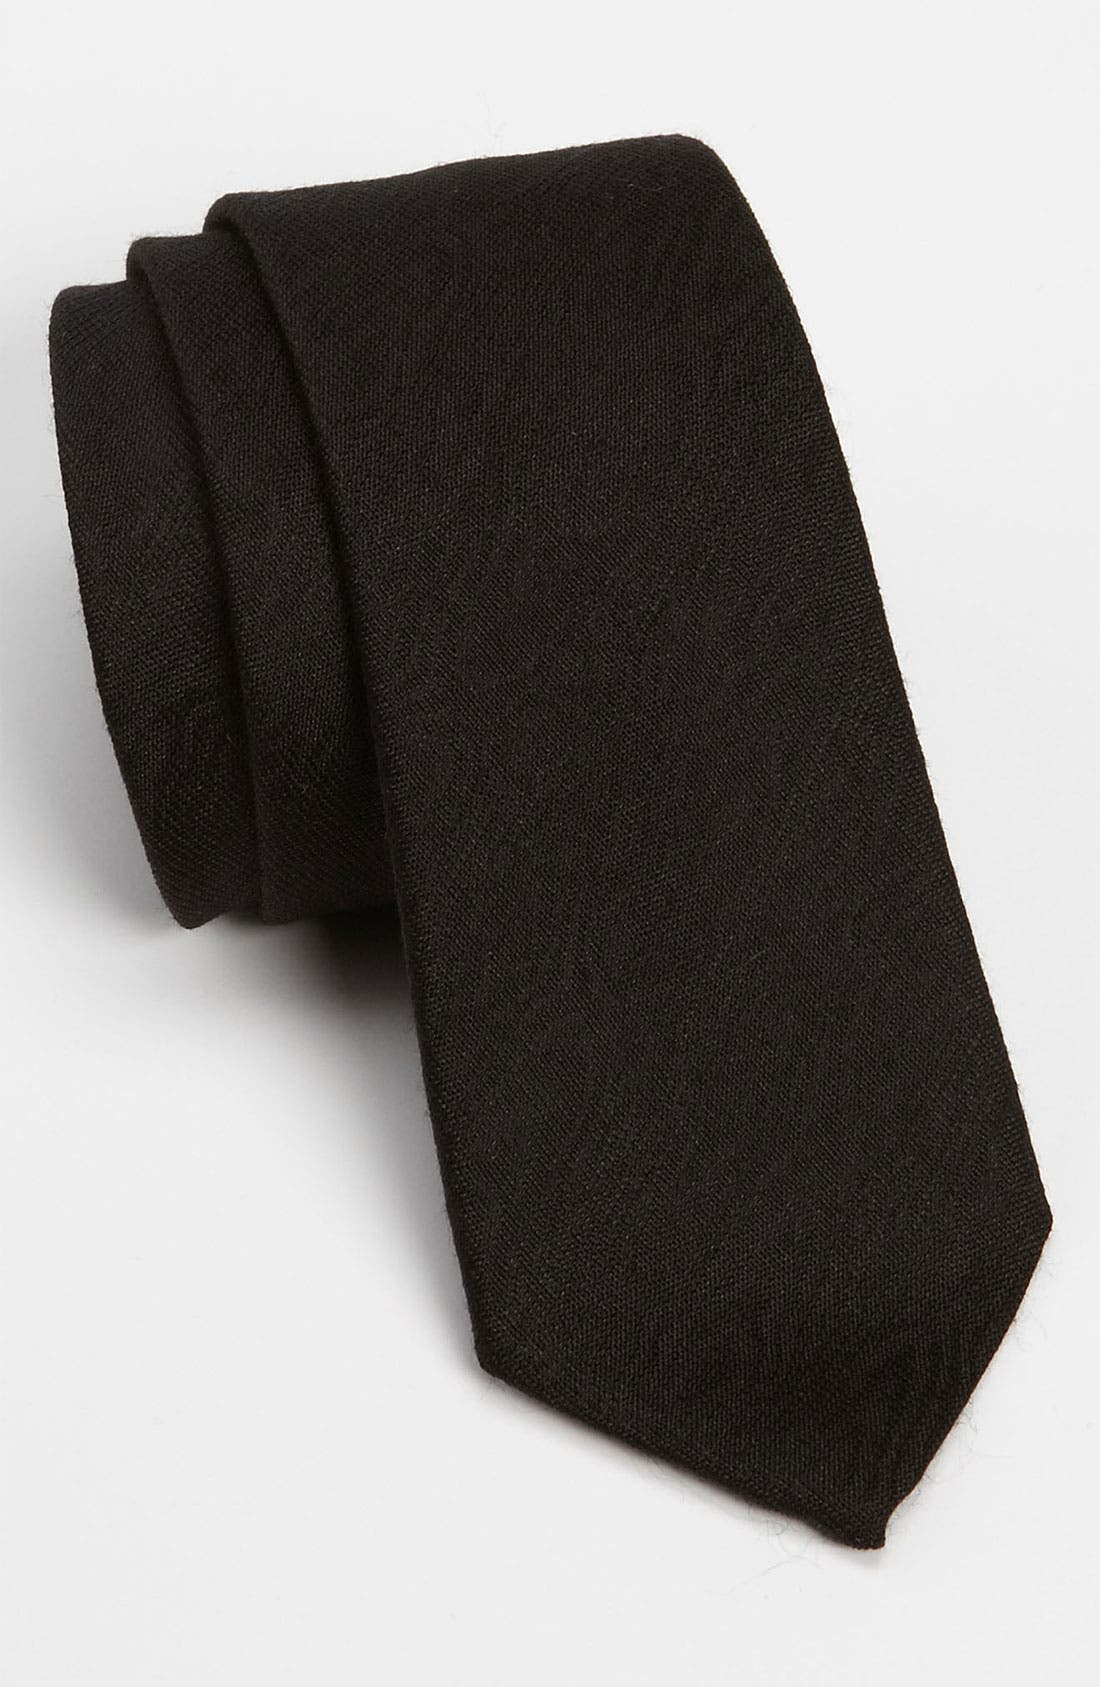 Alternate Image 1 Selected - Dolce&Gabbana Woven Tie